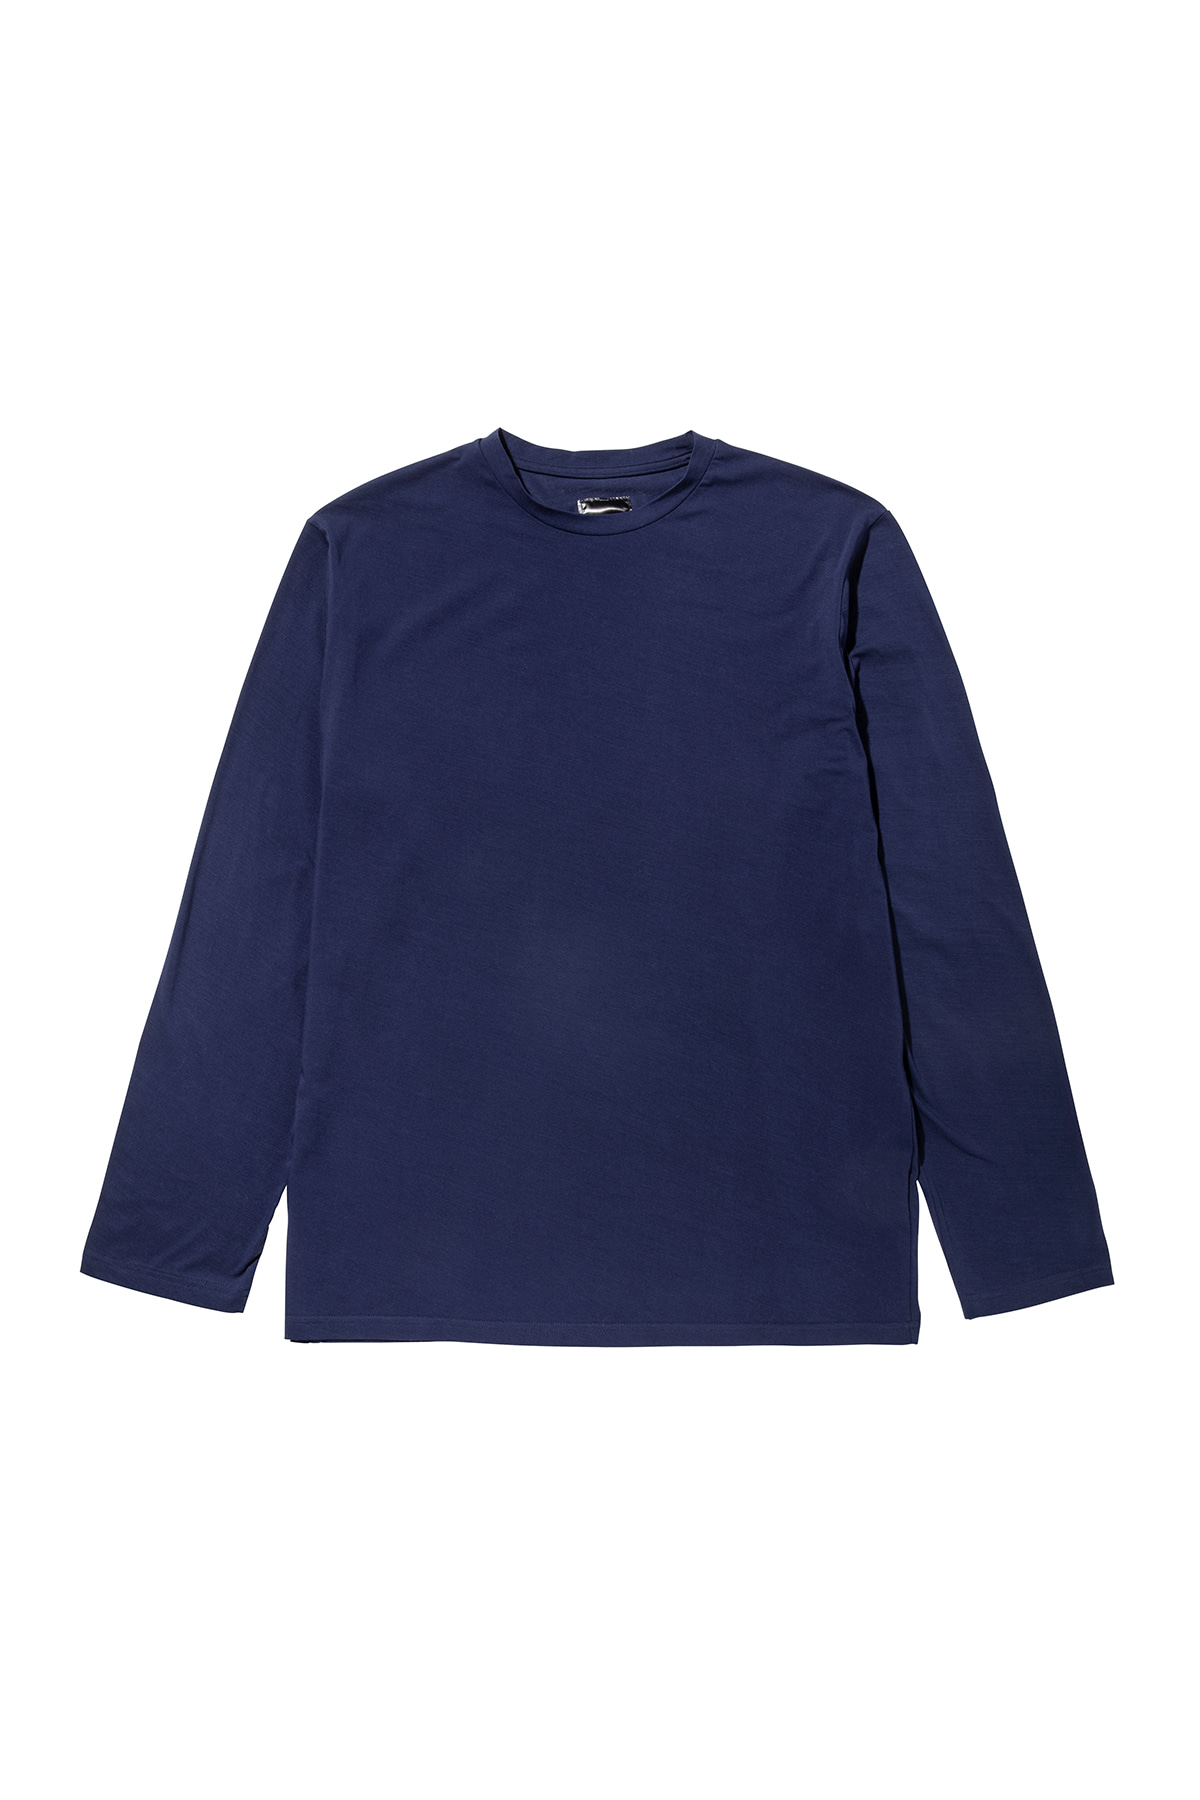 Basic long sleeve T-shirt (navy) #jp28